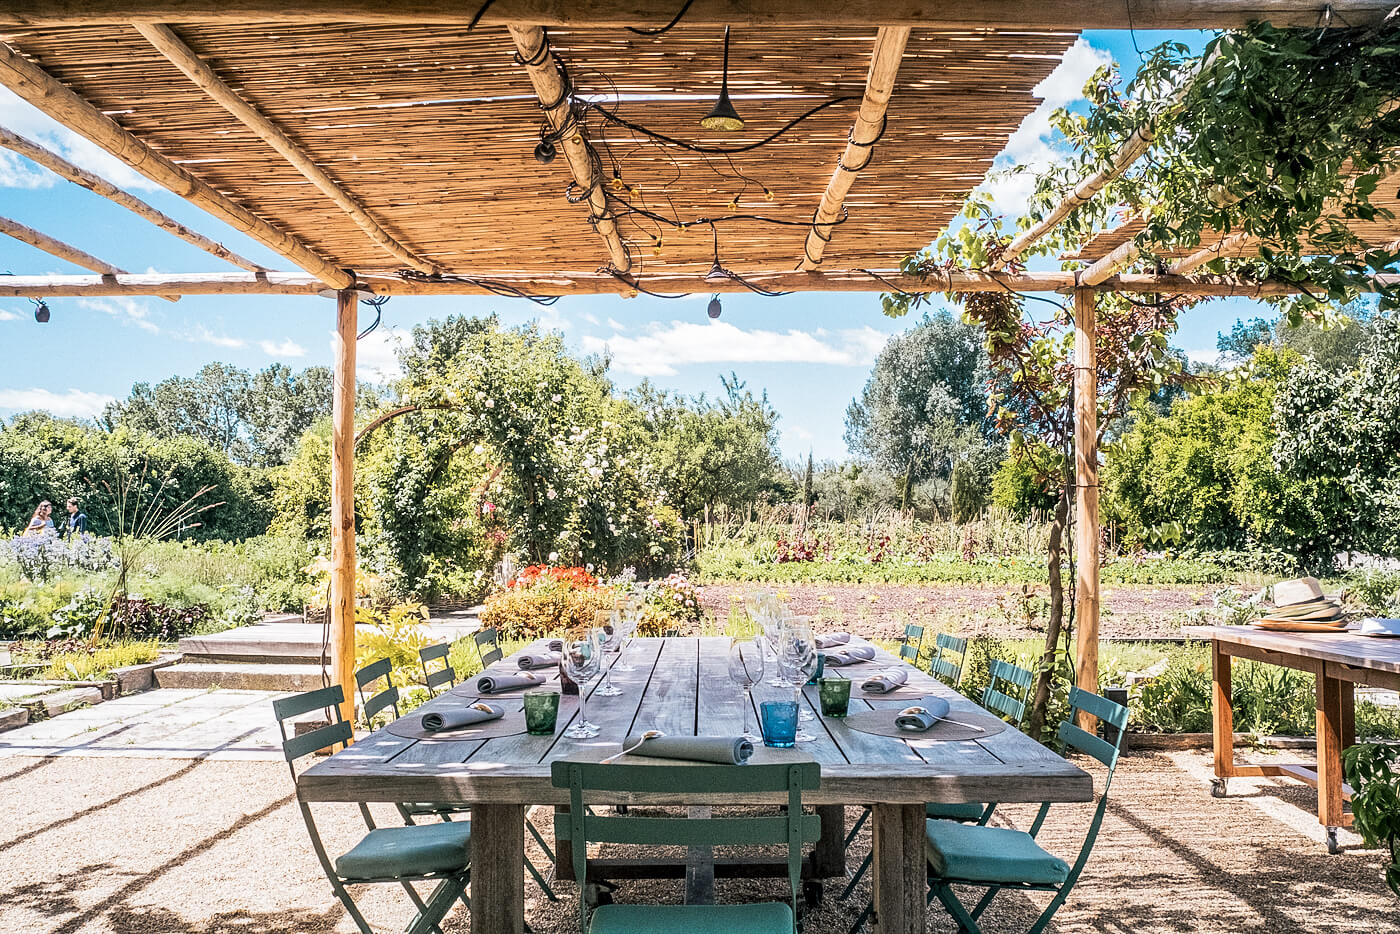 La Chassagnette was the first organic restaurant sustainable zero waste